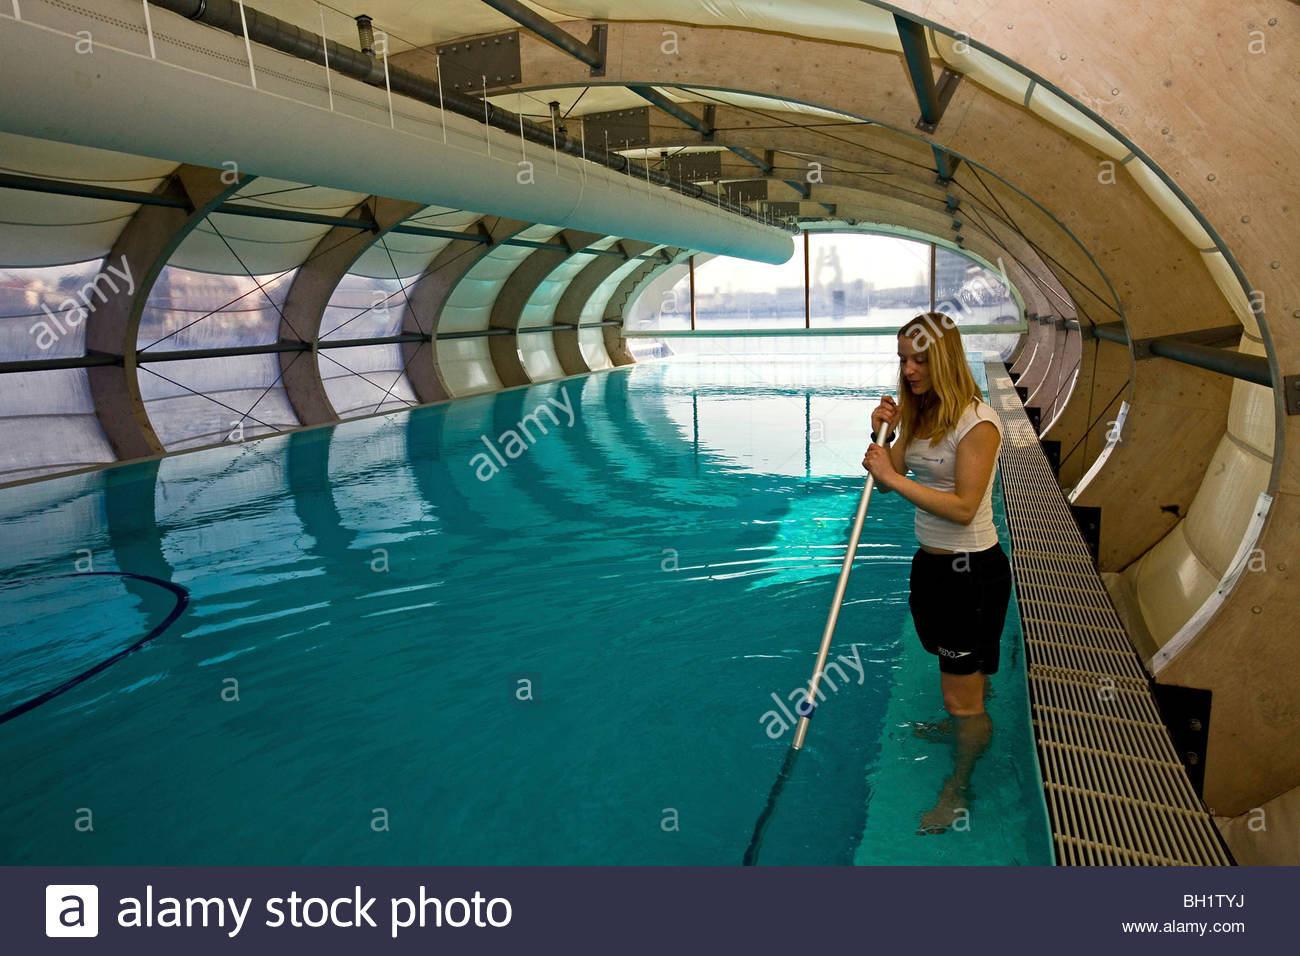 Swimmingpool Berlin Pool Cleaner Stock Photos Pool Cleaner Stock Images Alamy